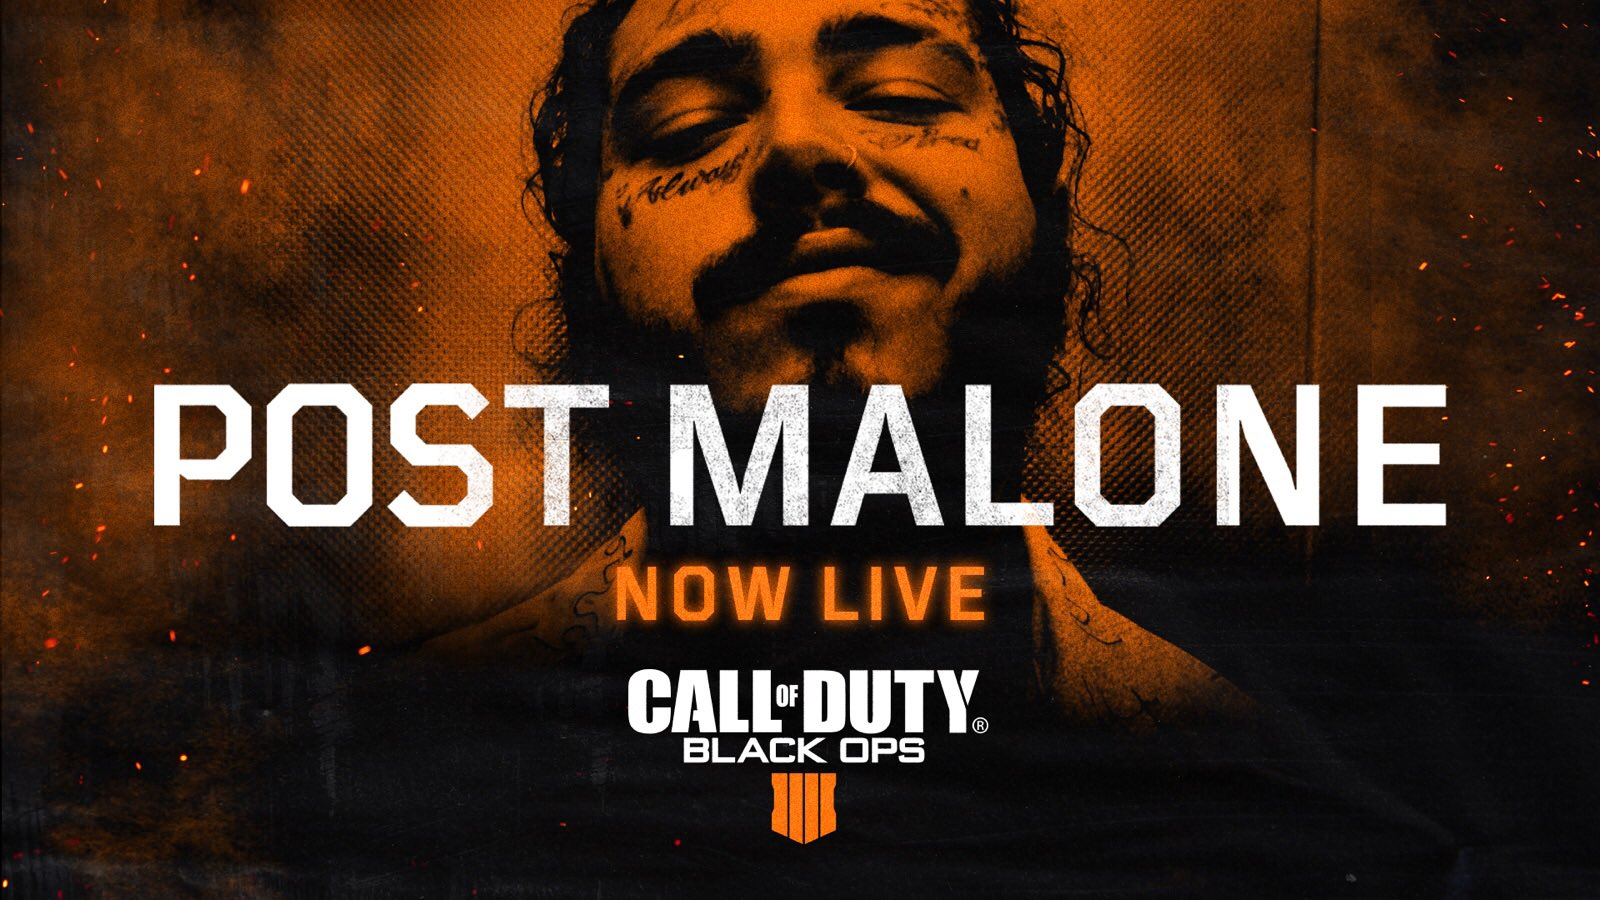 let's get some black ops! we are streaming that new @callofduty right now: https://t.co/GqKKz4DN2f #ad #blackops4 https://t.co/Dev85SnOan